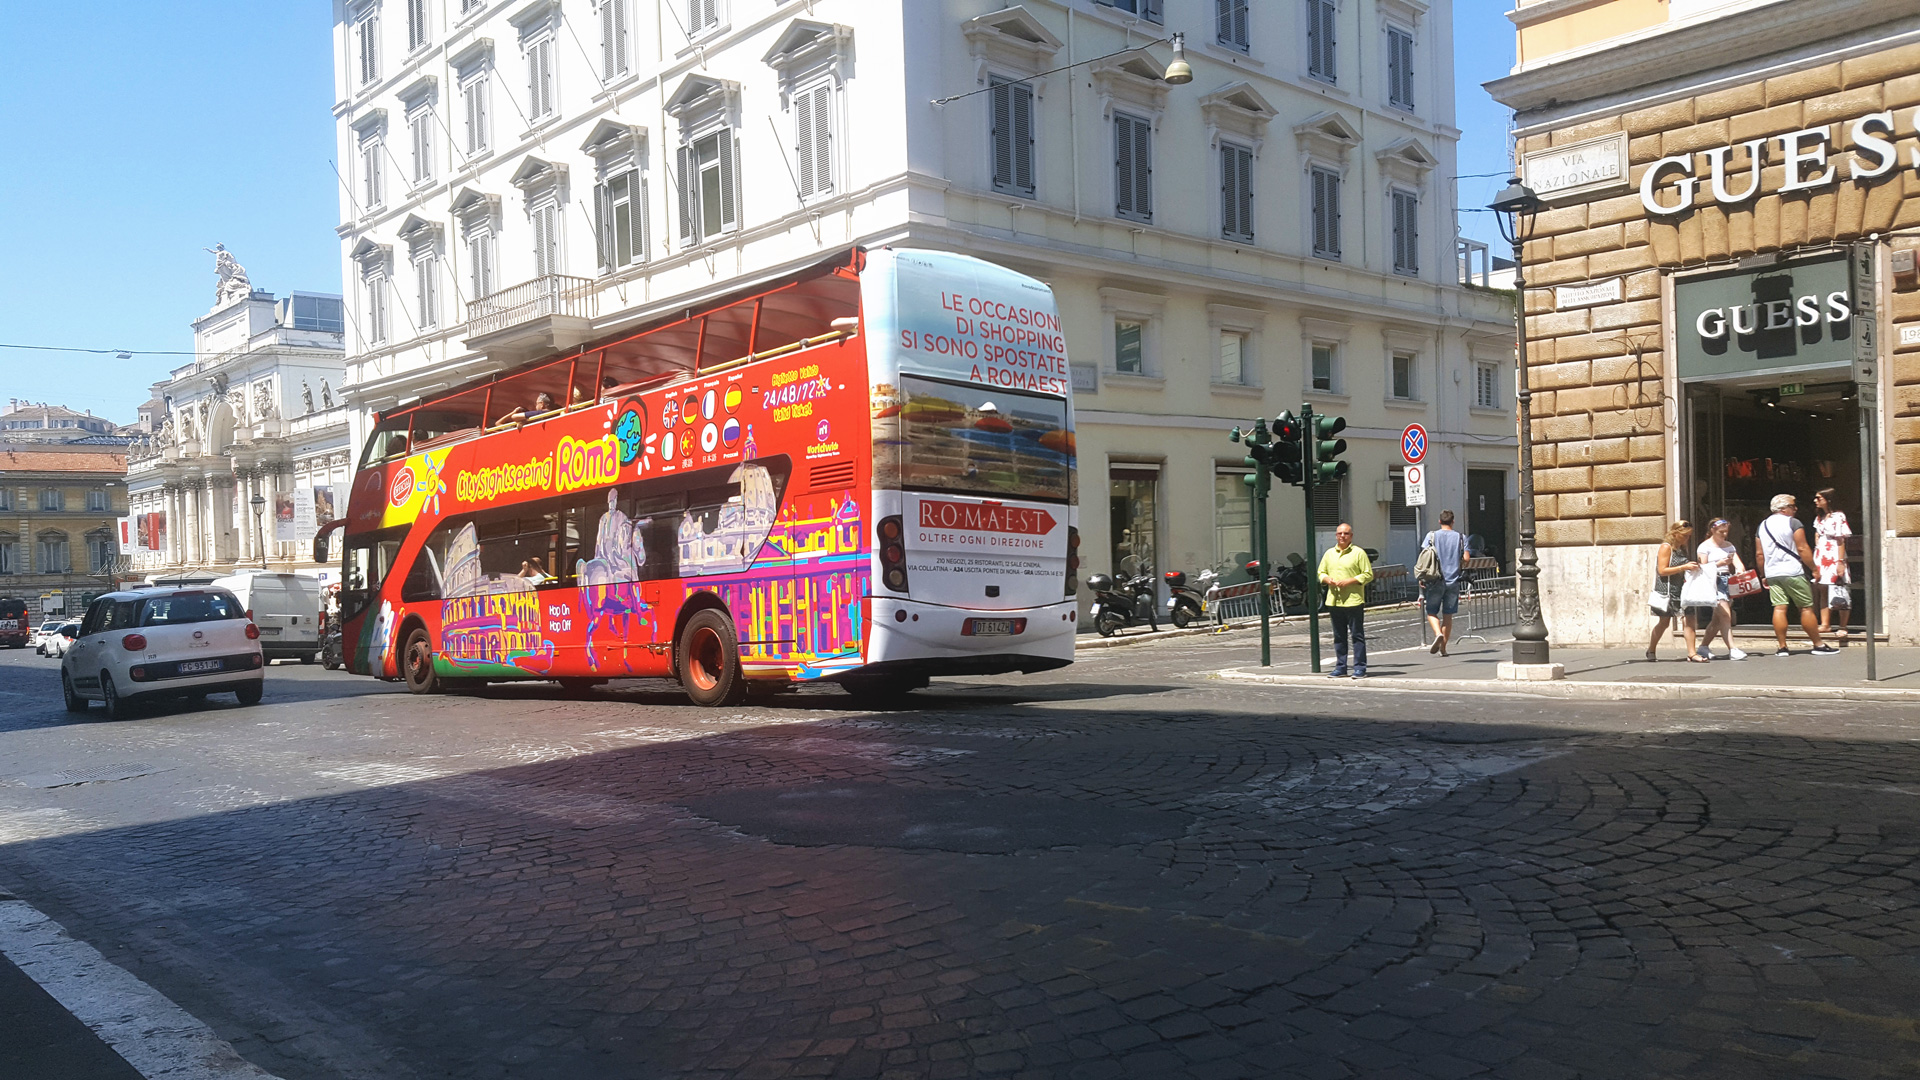 Rome sightseeing bus advertising